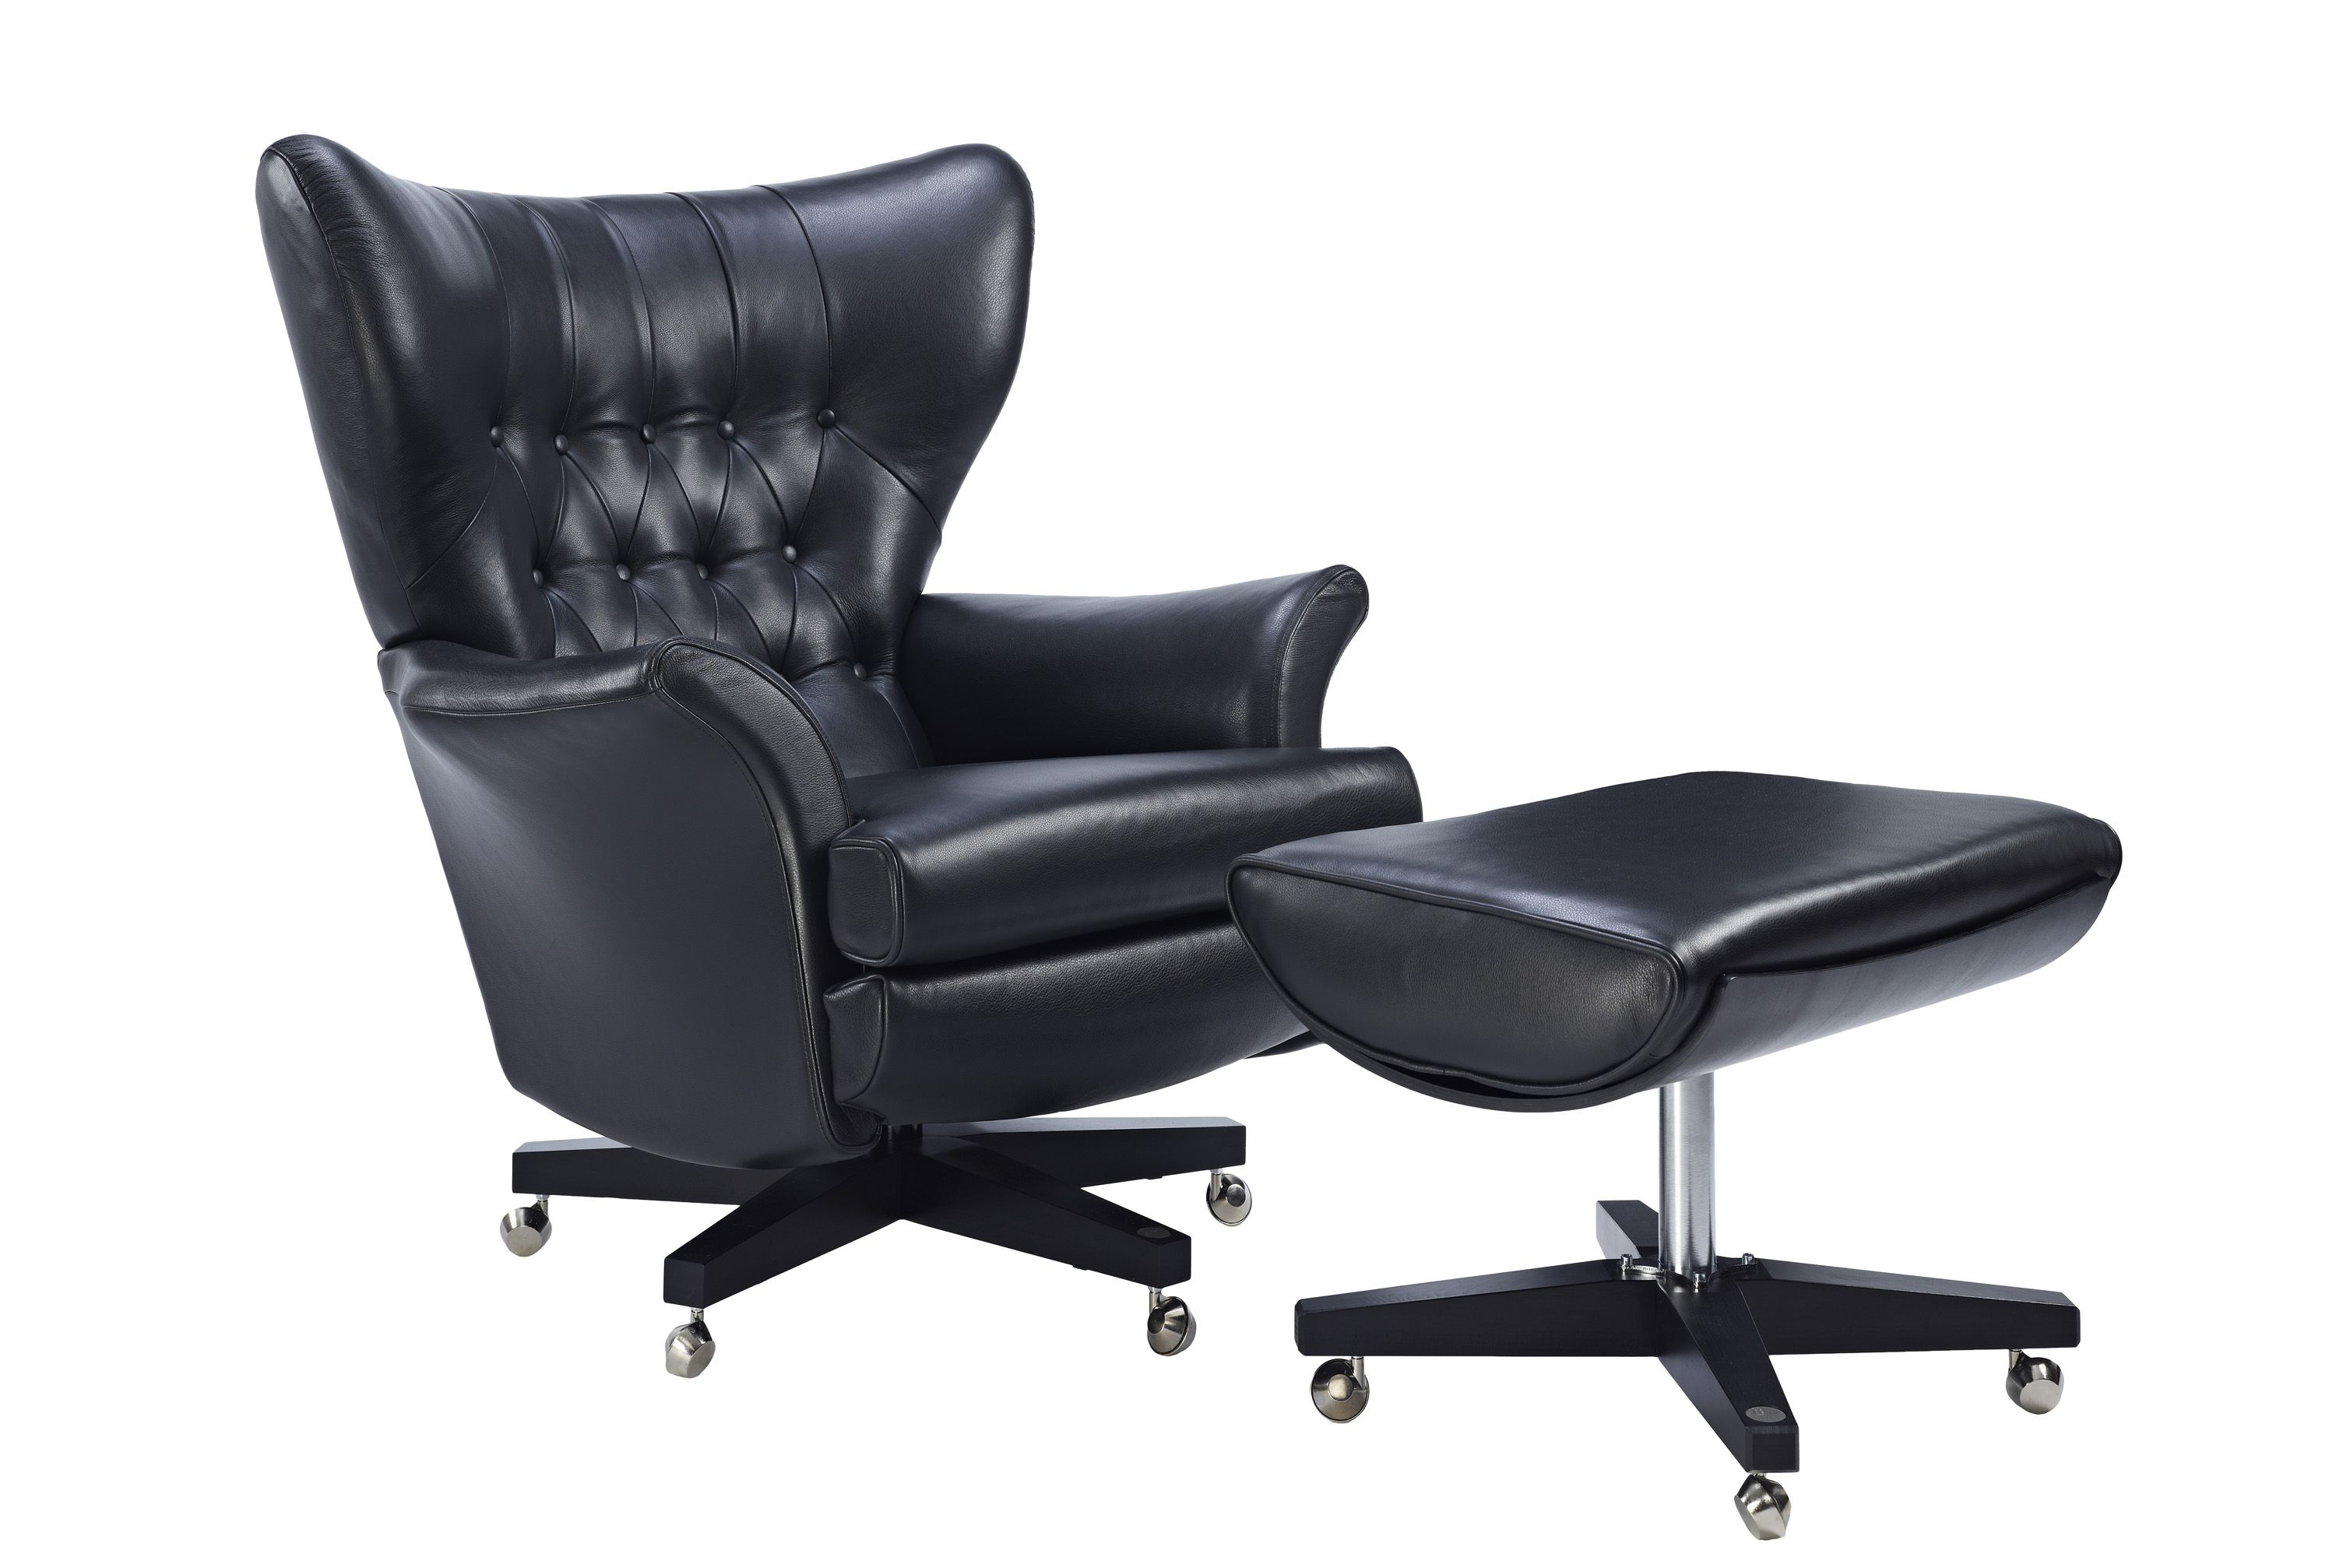 G Plan Vintage The Sixty Two Chair And Footstool In Capri Black